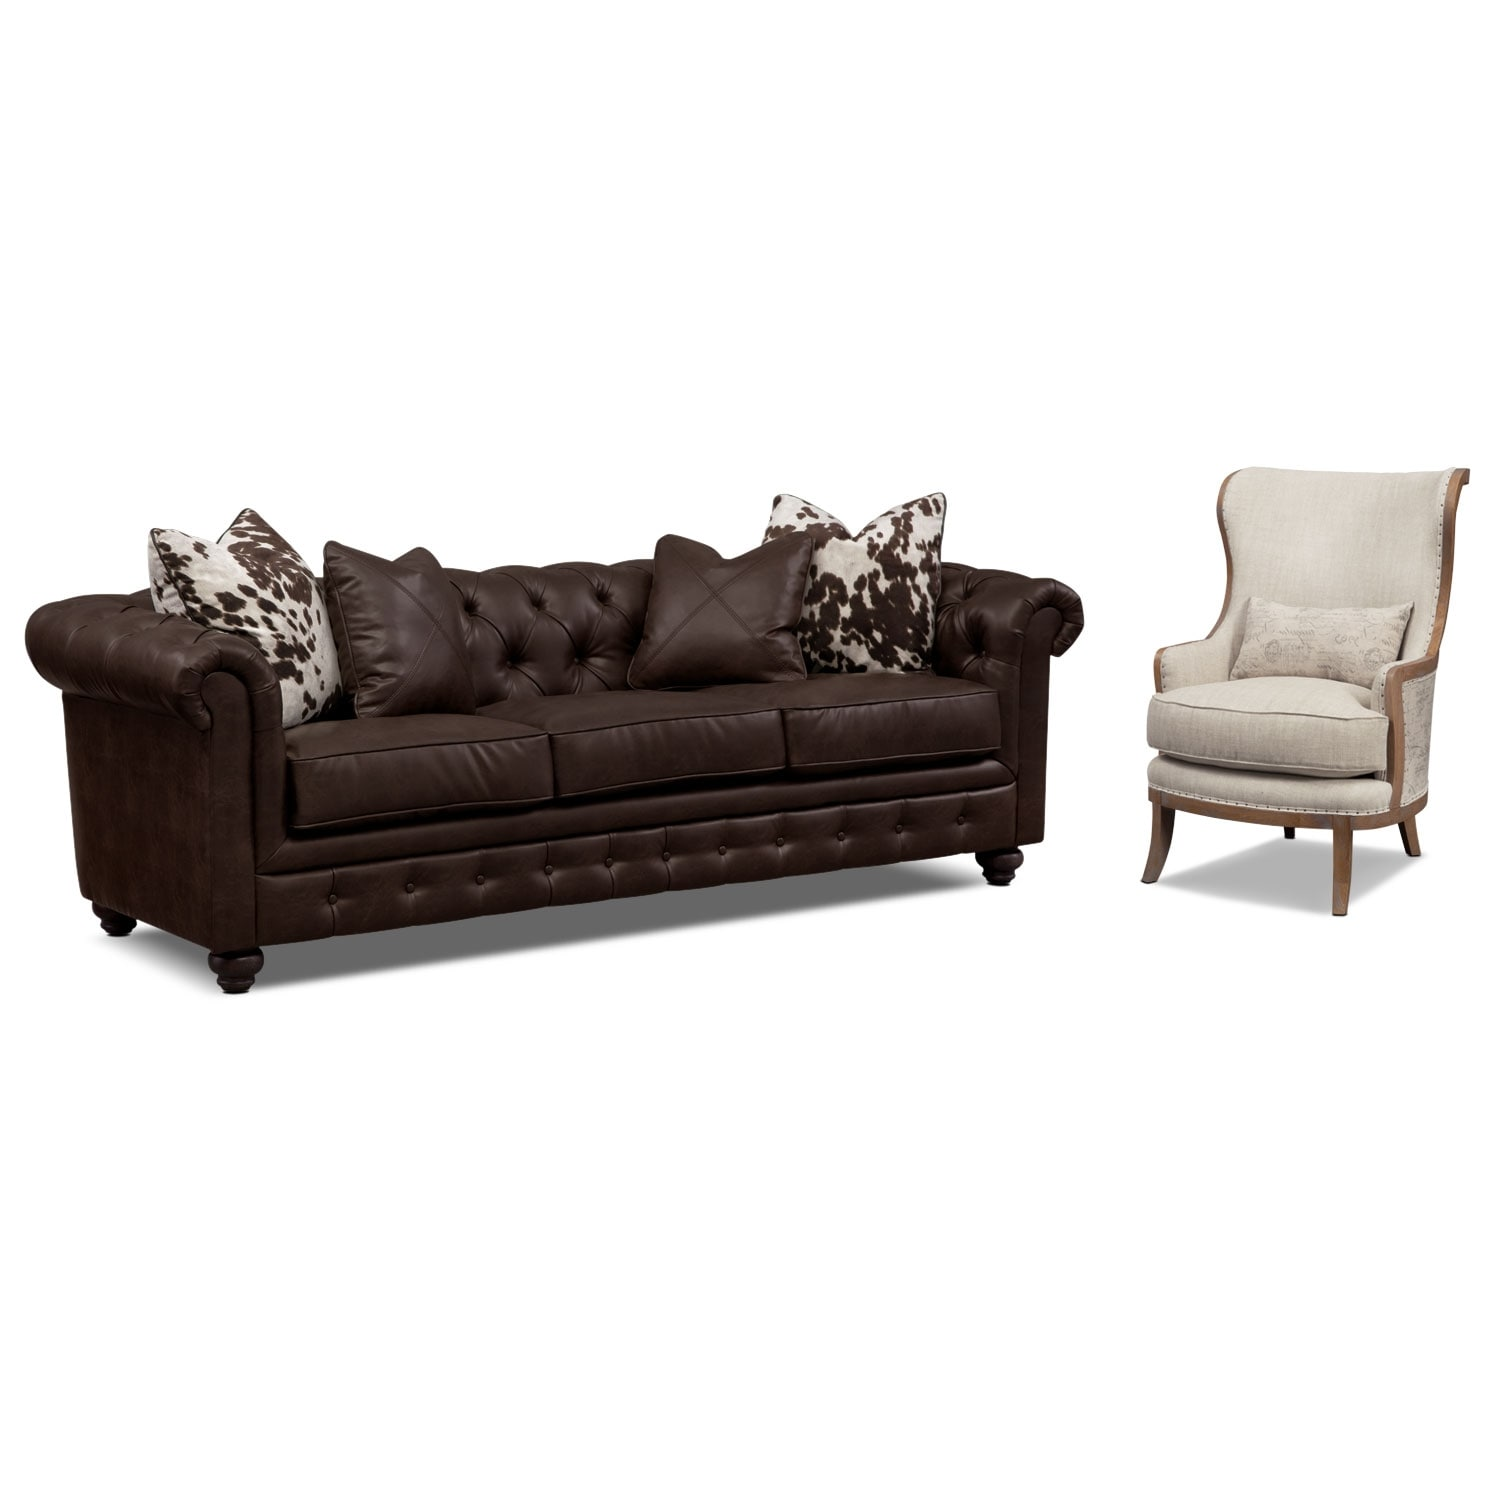 Living Room Furniture - Madeline Chocolate 2 Pc. Living Room w/ Accent Chair Set